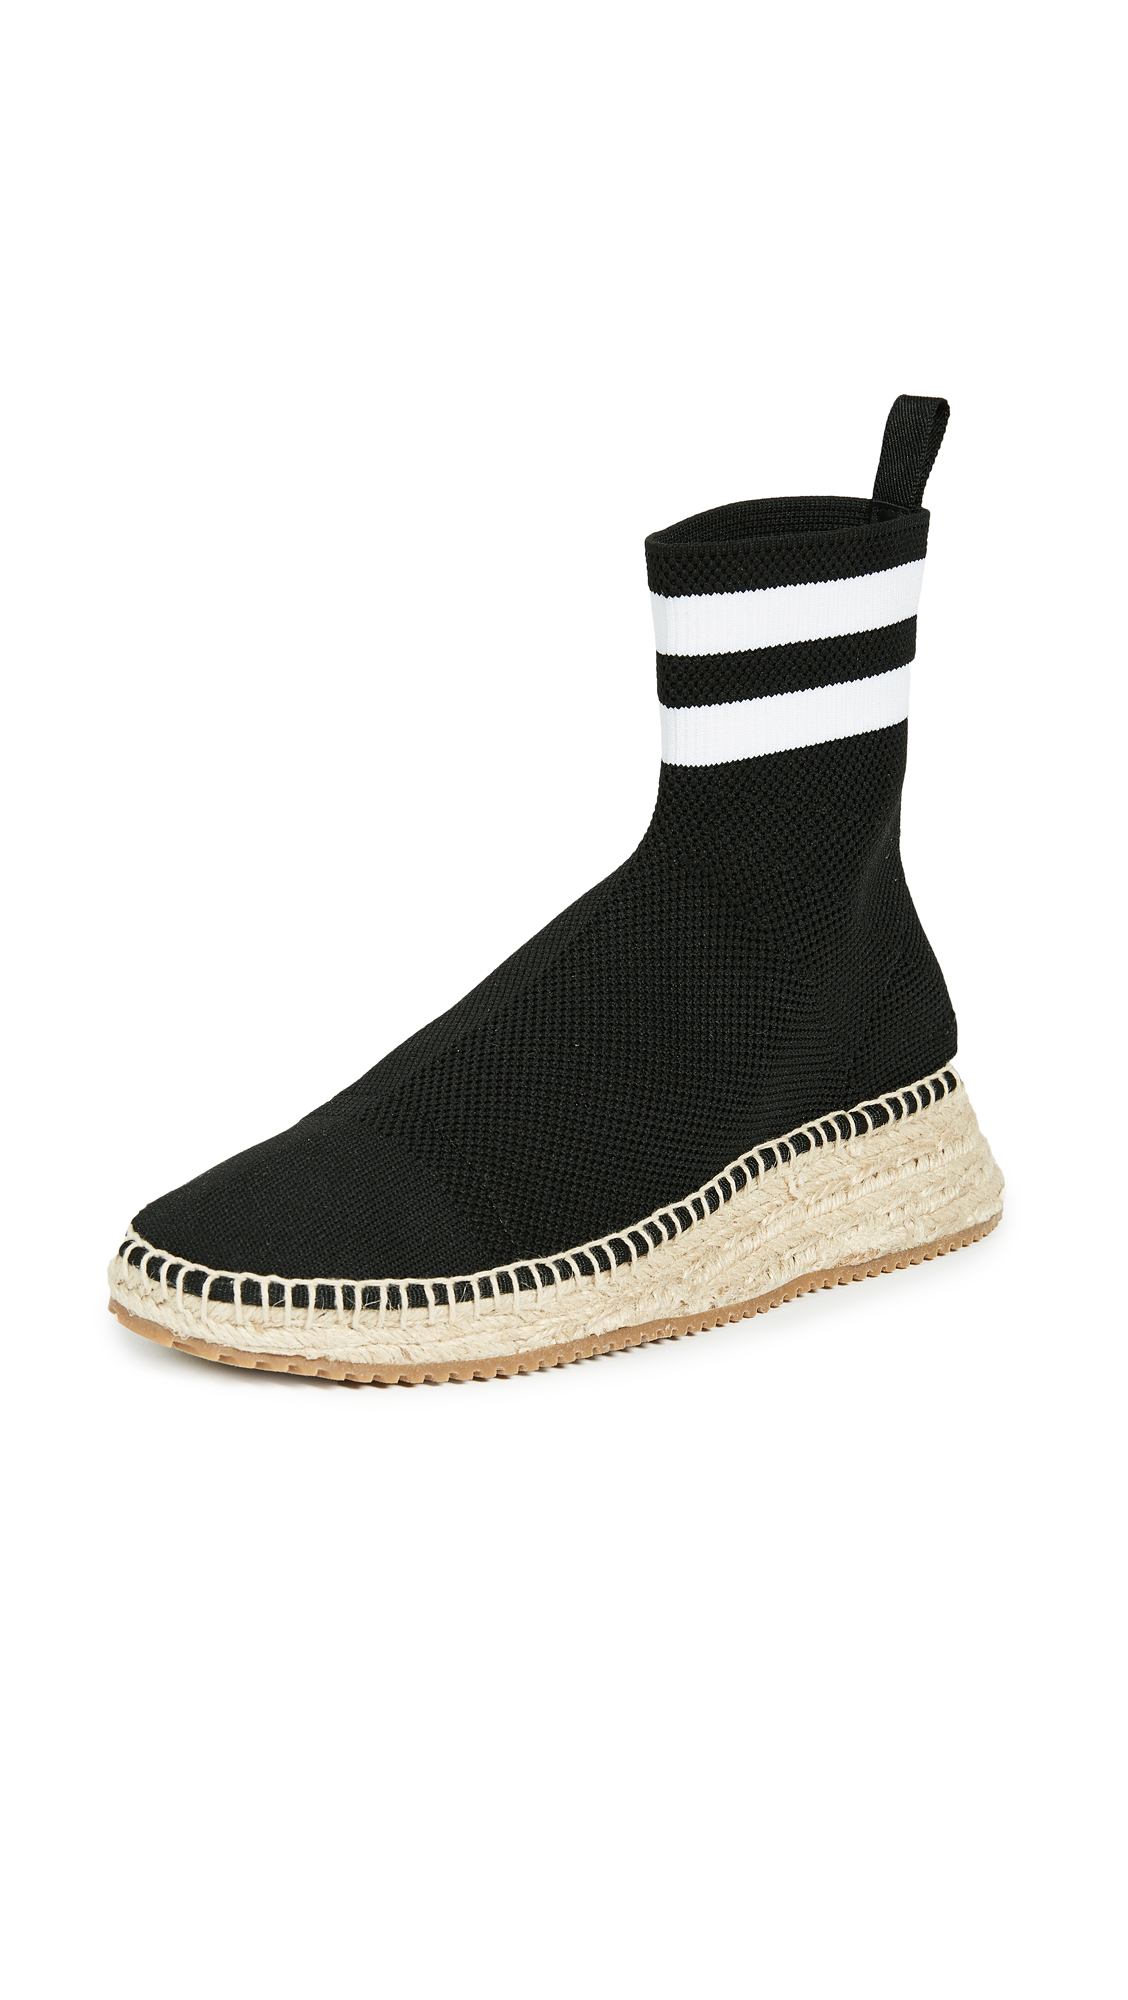 Alexander Wang Dylan High Knit Espadrille Runners - Black/White